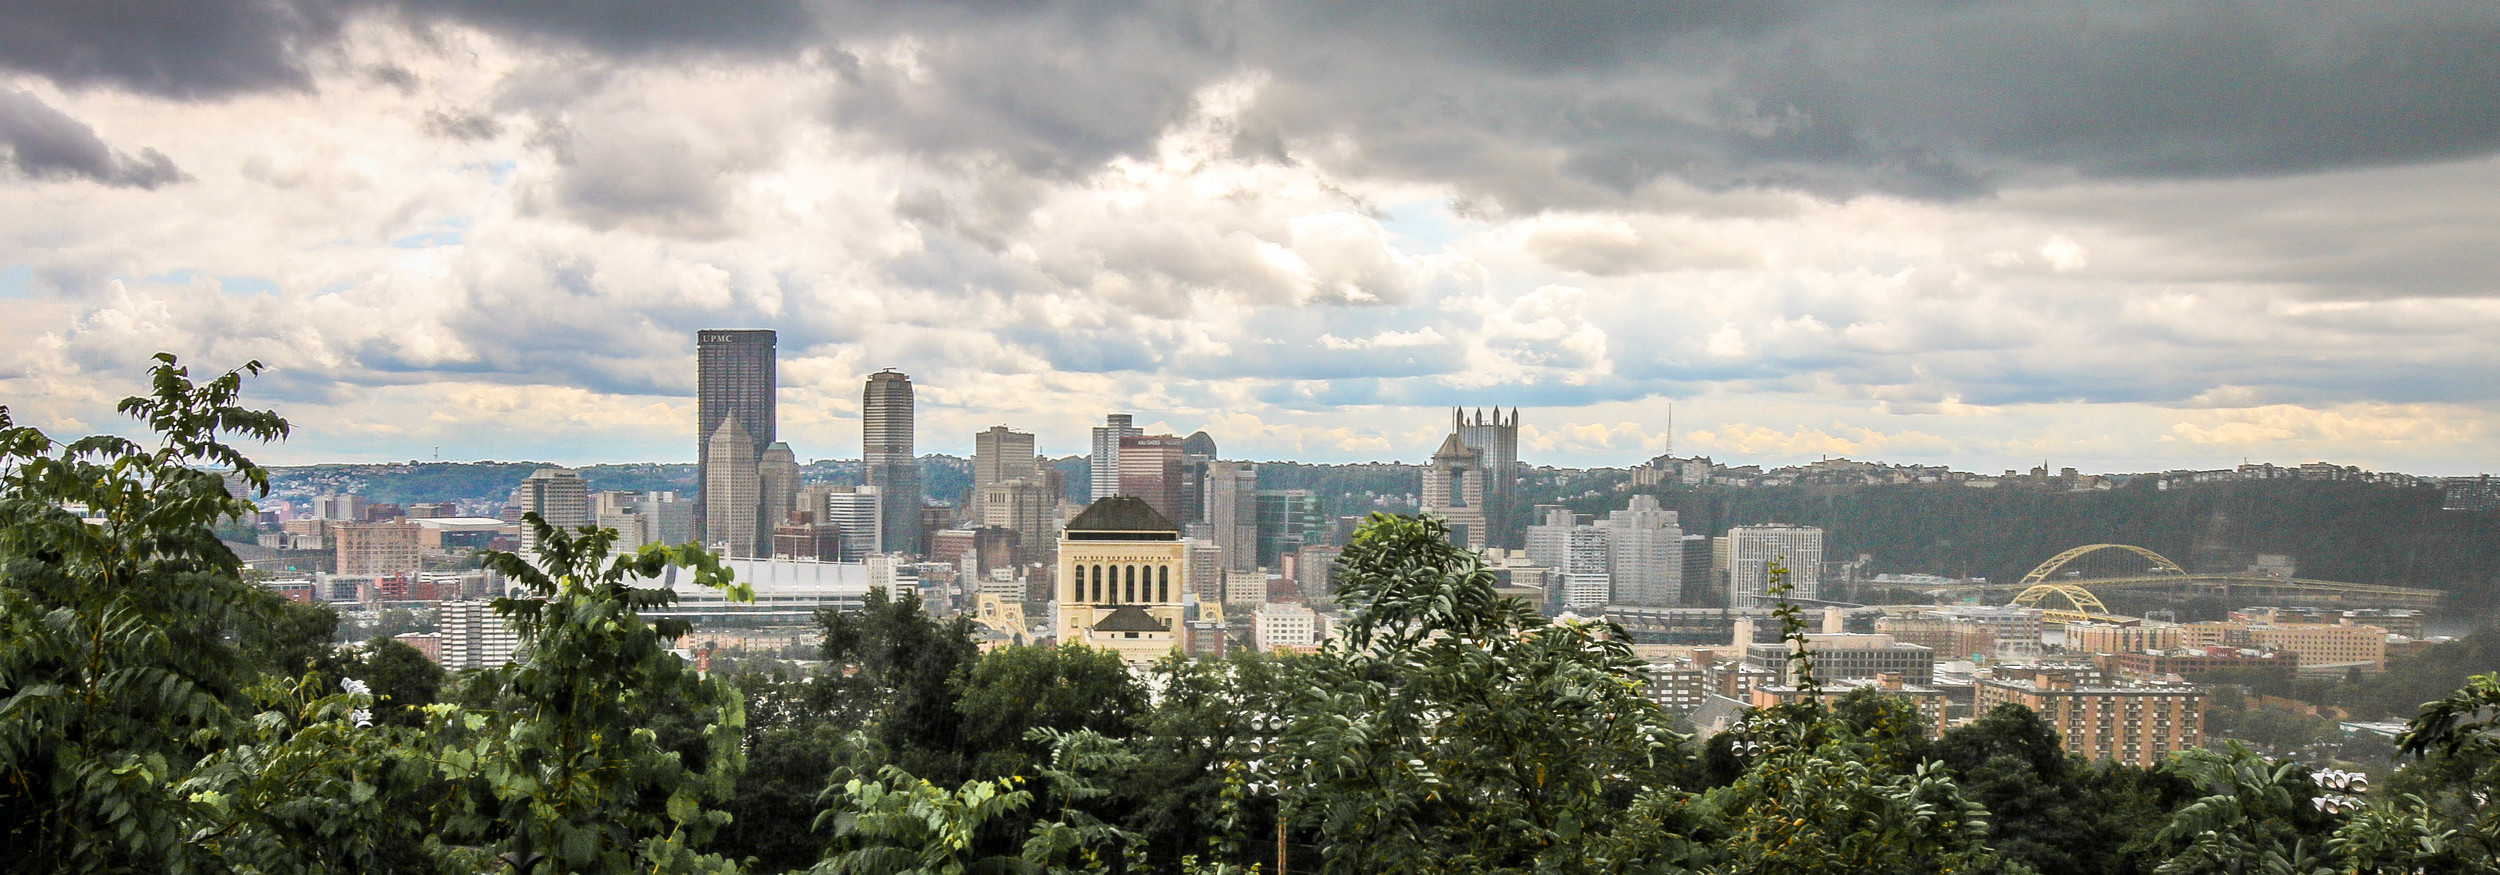 Pittsburgh from our neighborhood on the North Side, during a late summer rainstorm